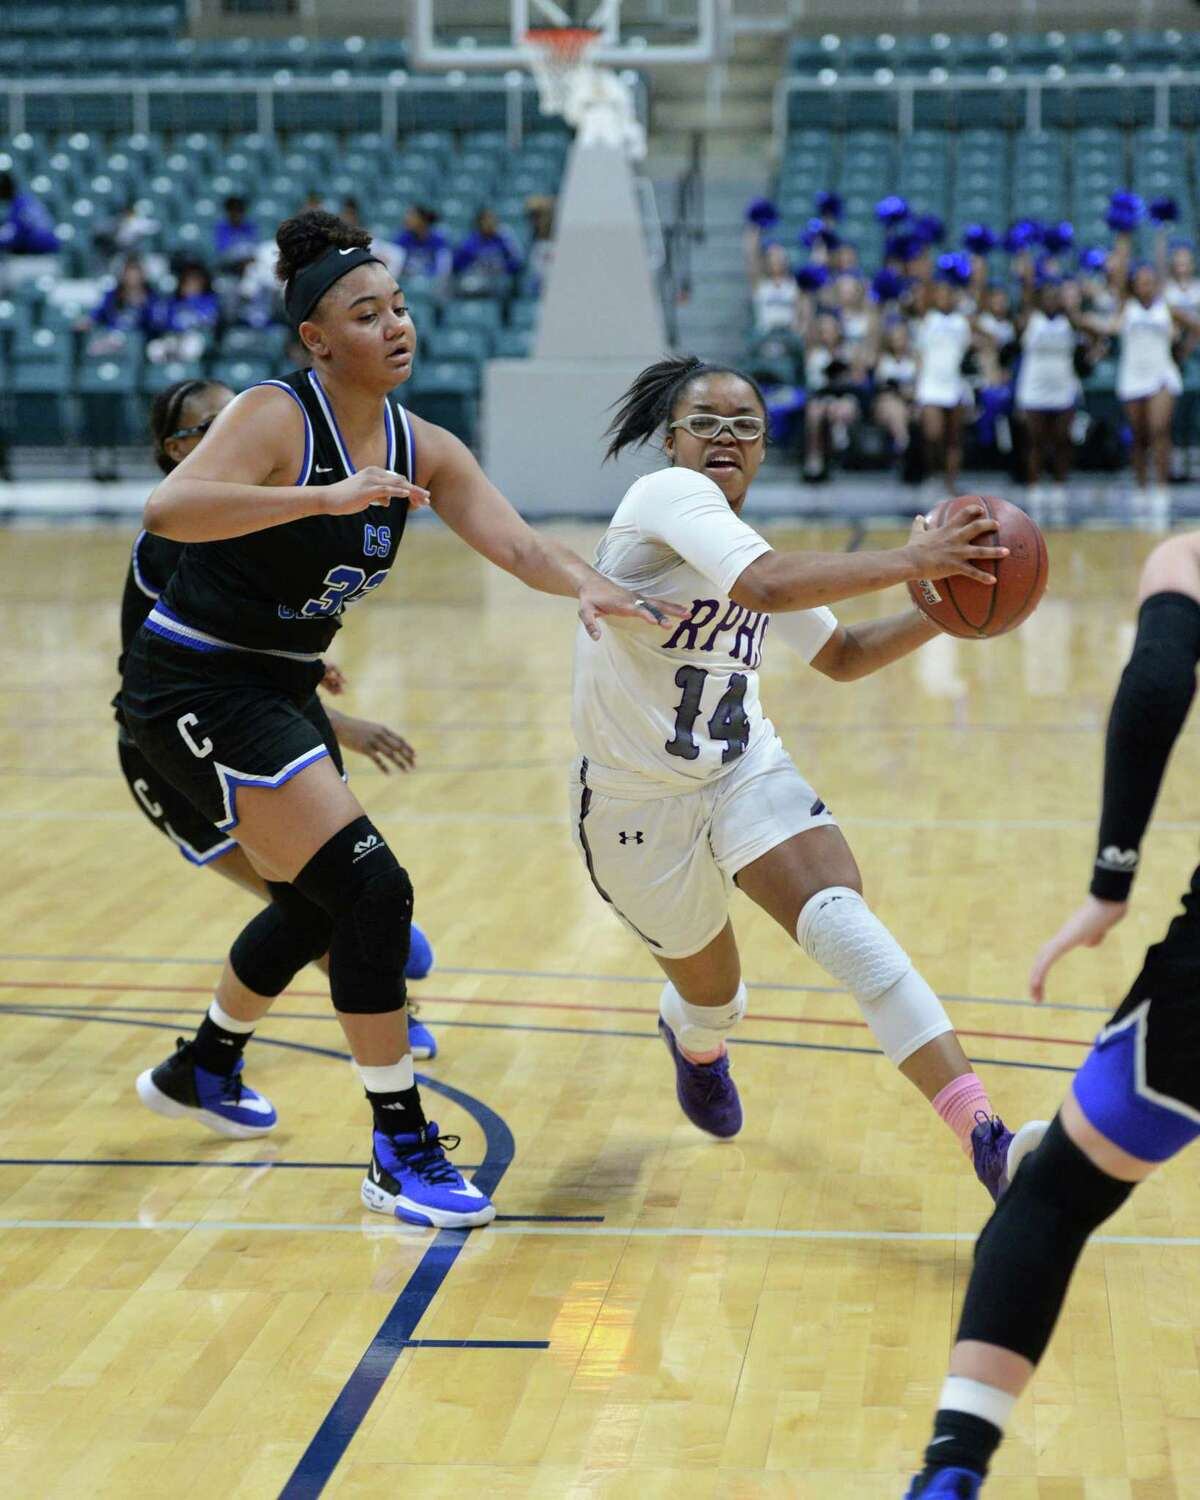 Aleighyah Fontenot (14) of Ridge Point drives past Blaise Blair (33) of Clear Springs during the second quarter of a Girls 6A Region III semifinal play-off game between the Ridge Point Panthers and the Clear Springs Chargers on Friday, February 28, 2020 at the Leonard Merrell Center, Katy, TX.